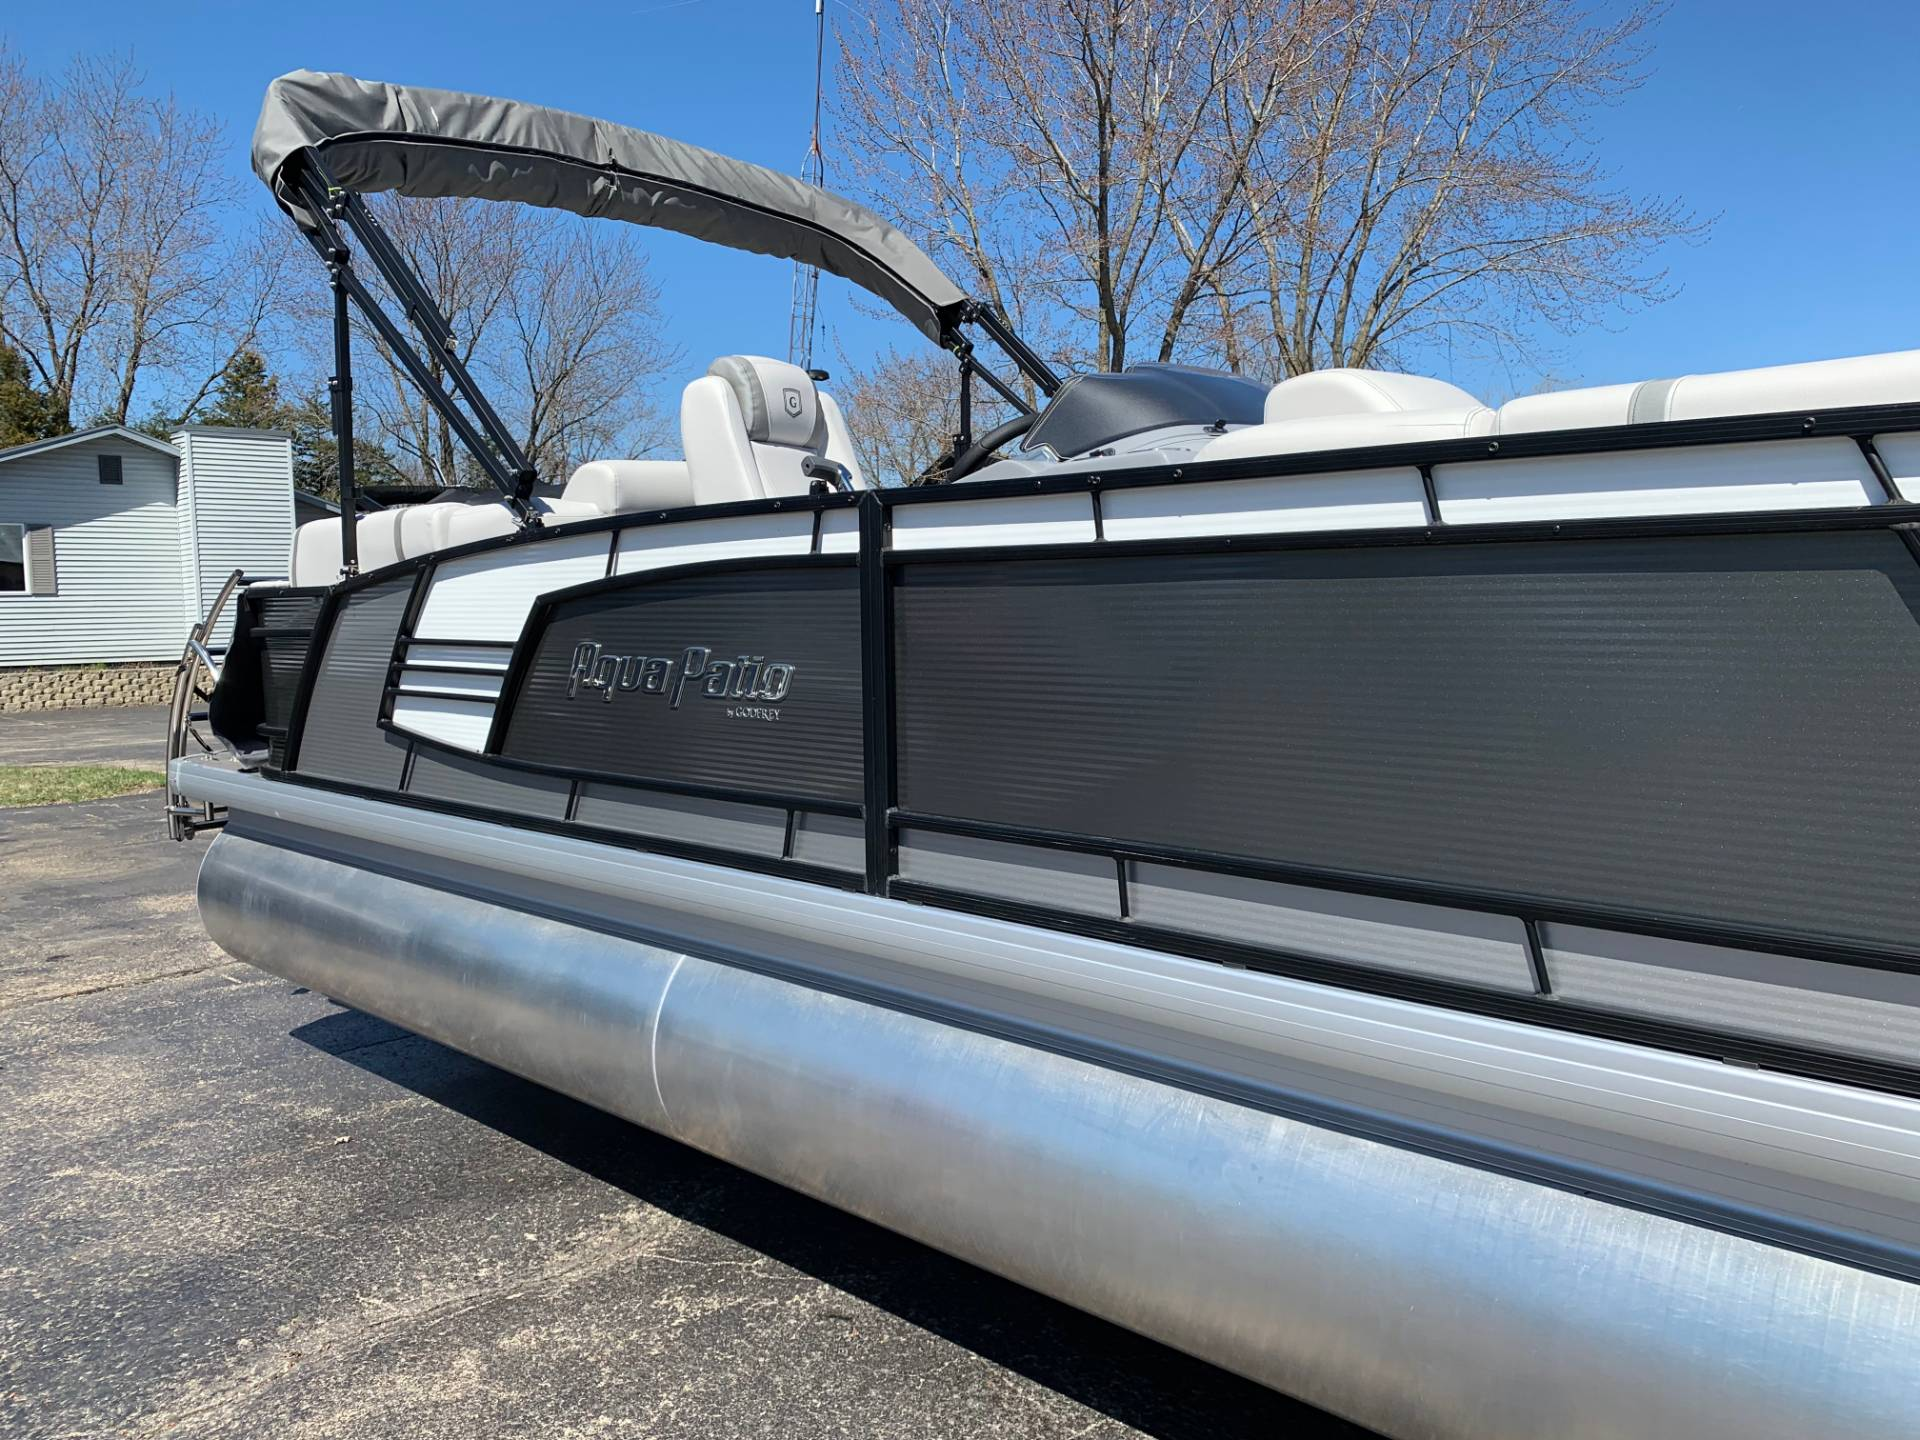 2019 AquaPatio 235 SPLIT BENCH in Wilmington, Illinois - Photo 36